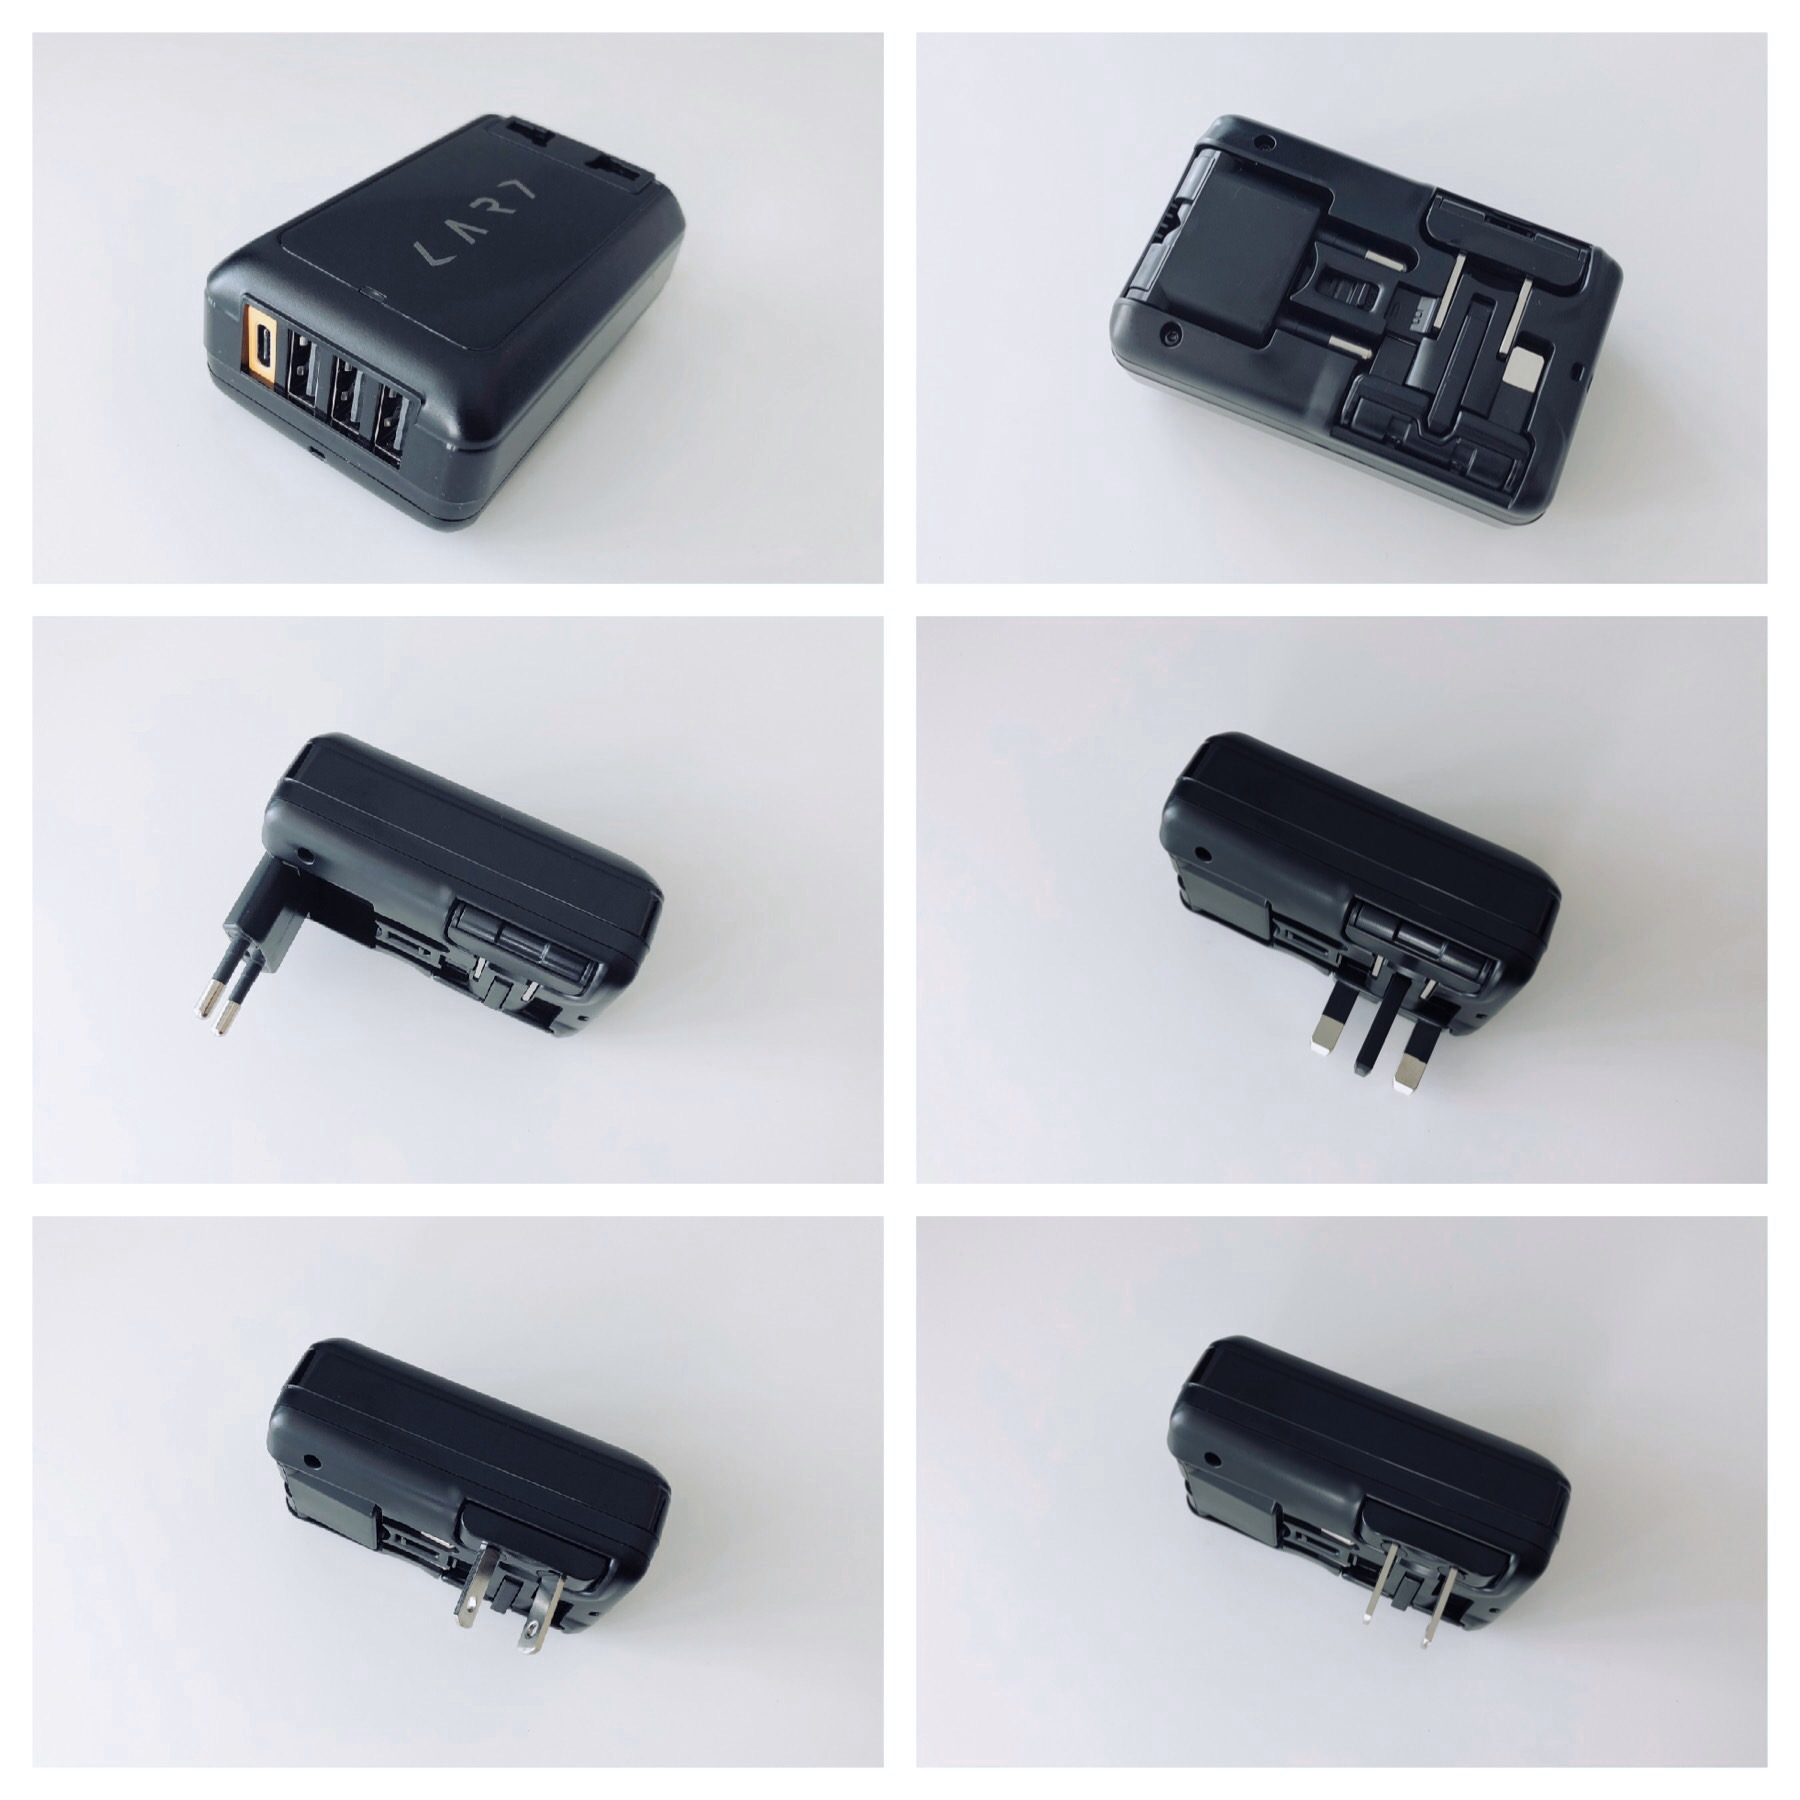 The CARD charger configurations